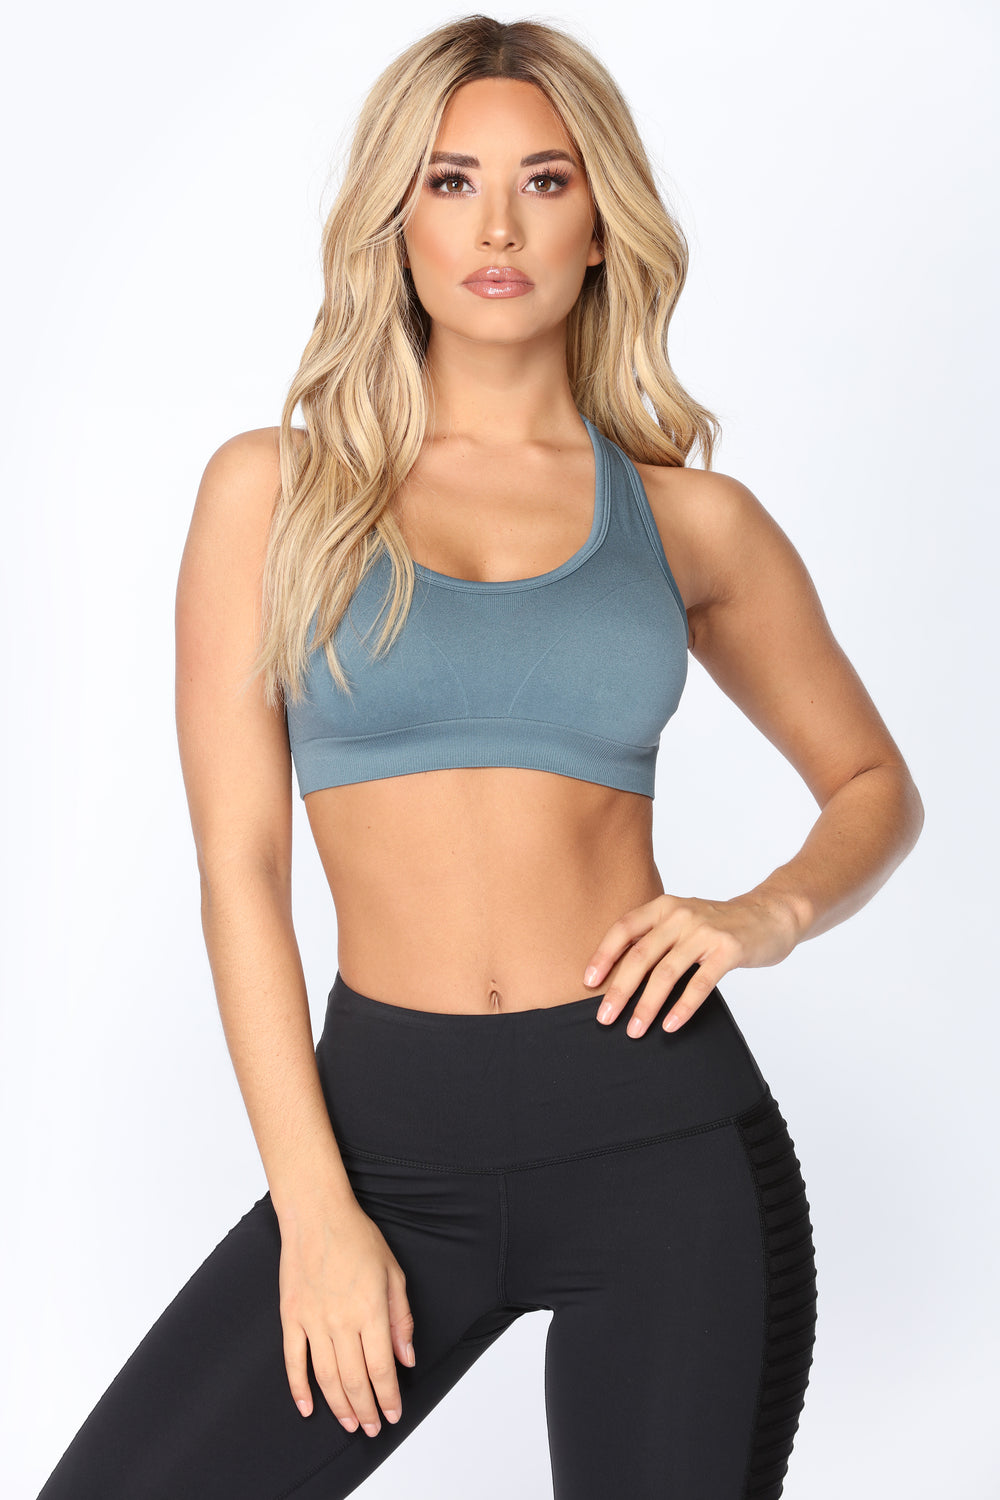 Race You There Seamless Sports Bra - Blue